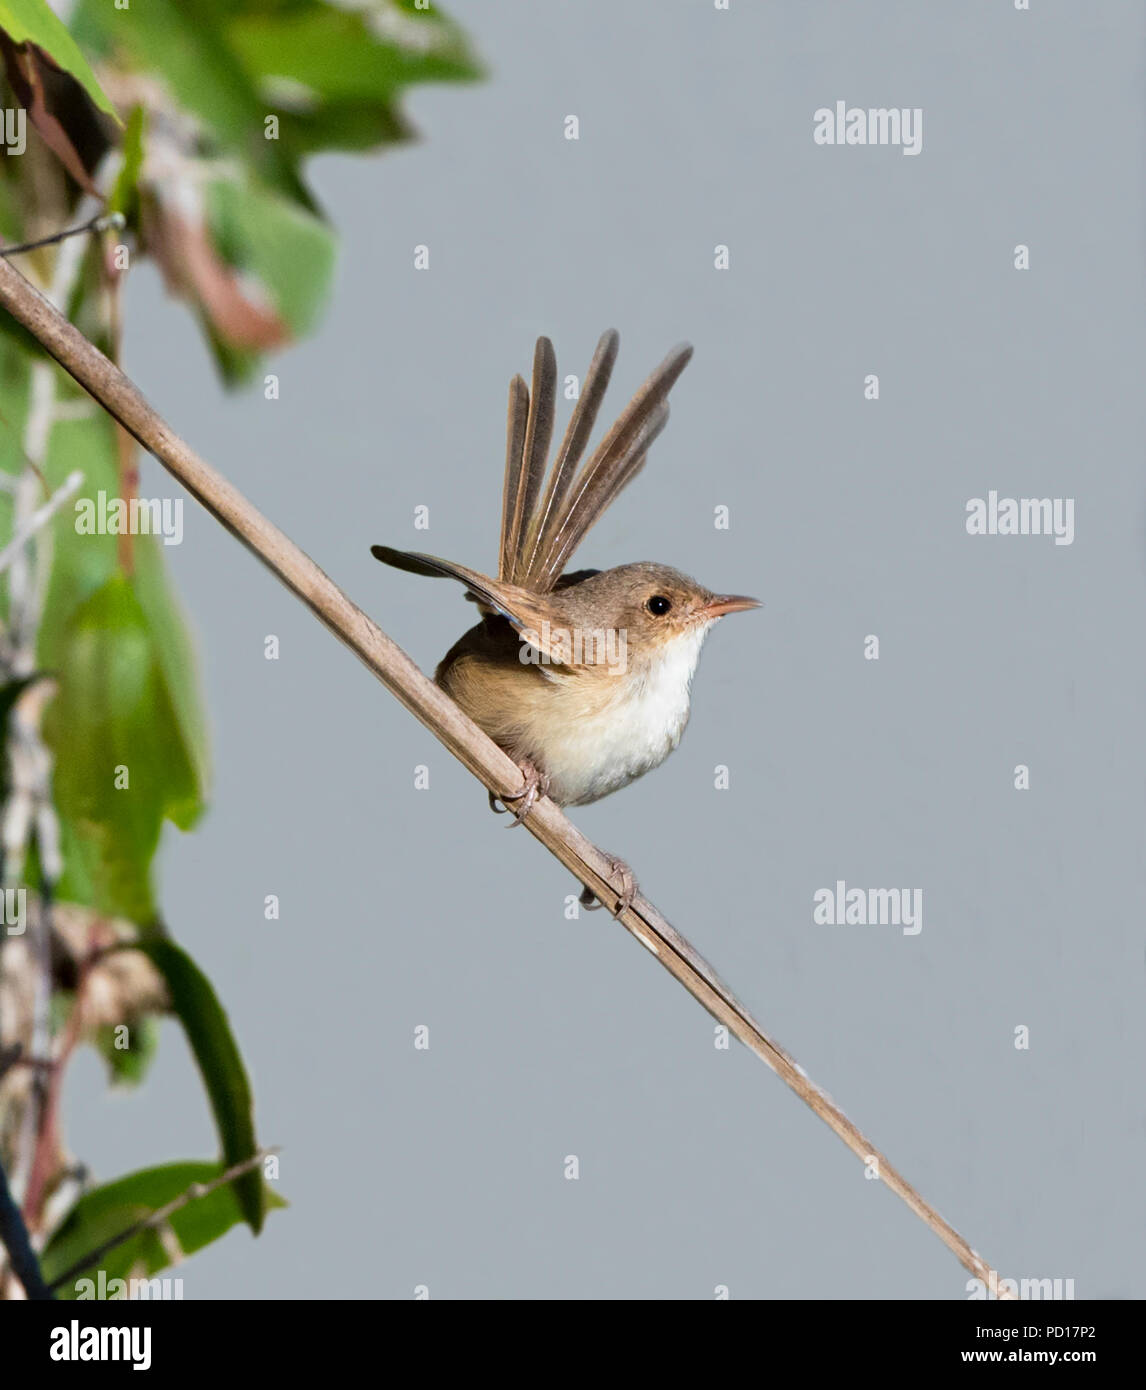 Female Red-backed Fairy-wren (Malurus melanocephalus) perched on a twig, Biboohra, Atherton Tableland, Far North Queensland, FNQ, QLD, Australia Stock Photo